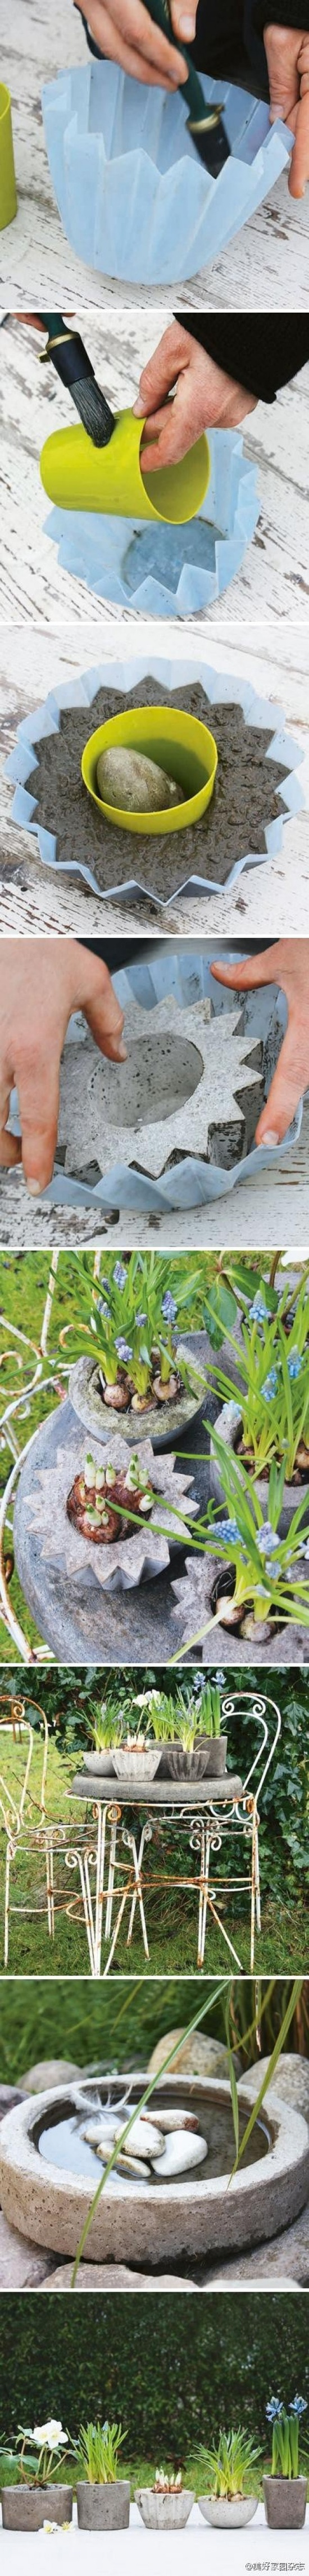 Make your own concrete planters project ideas creative and gardens creative and awesome do it yourself project ideas solutioingenieria Image collections